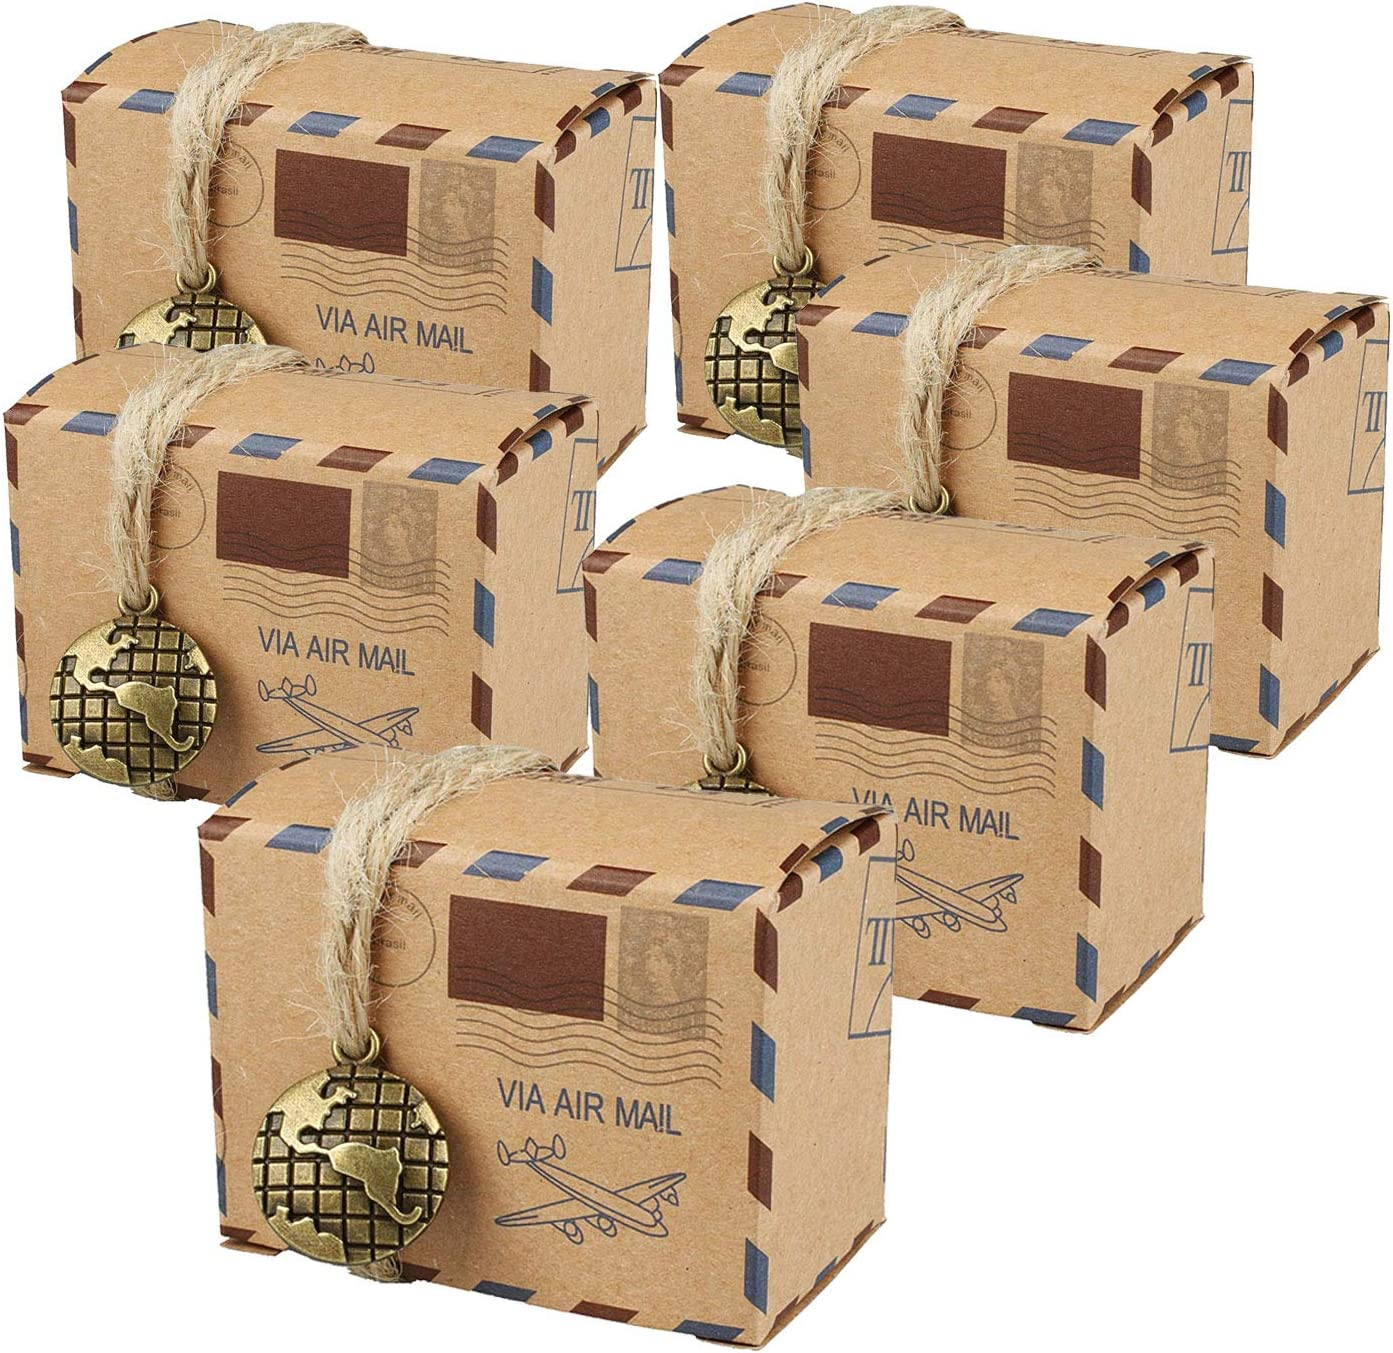 Faylapa Large-scale sale 100 Sets Airplane Our shop OFFers the best service Air Mail Themed Boxes Candy V Suitcase